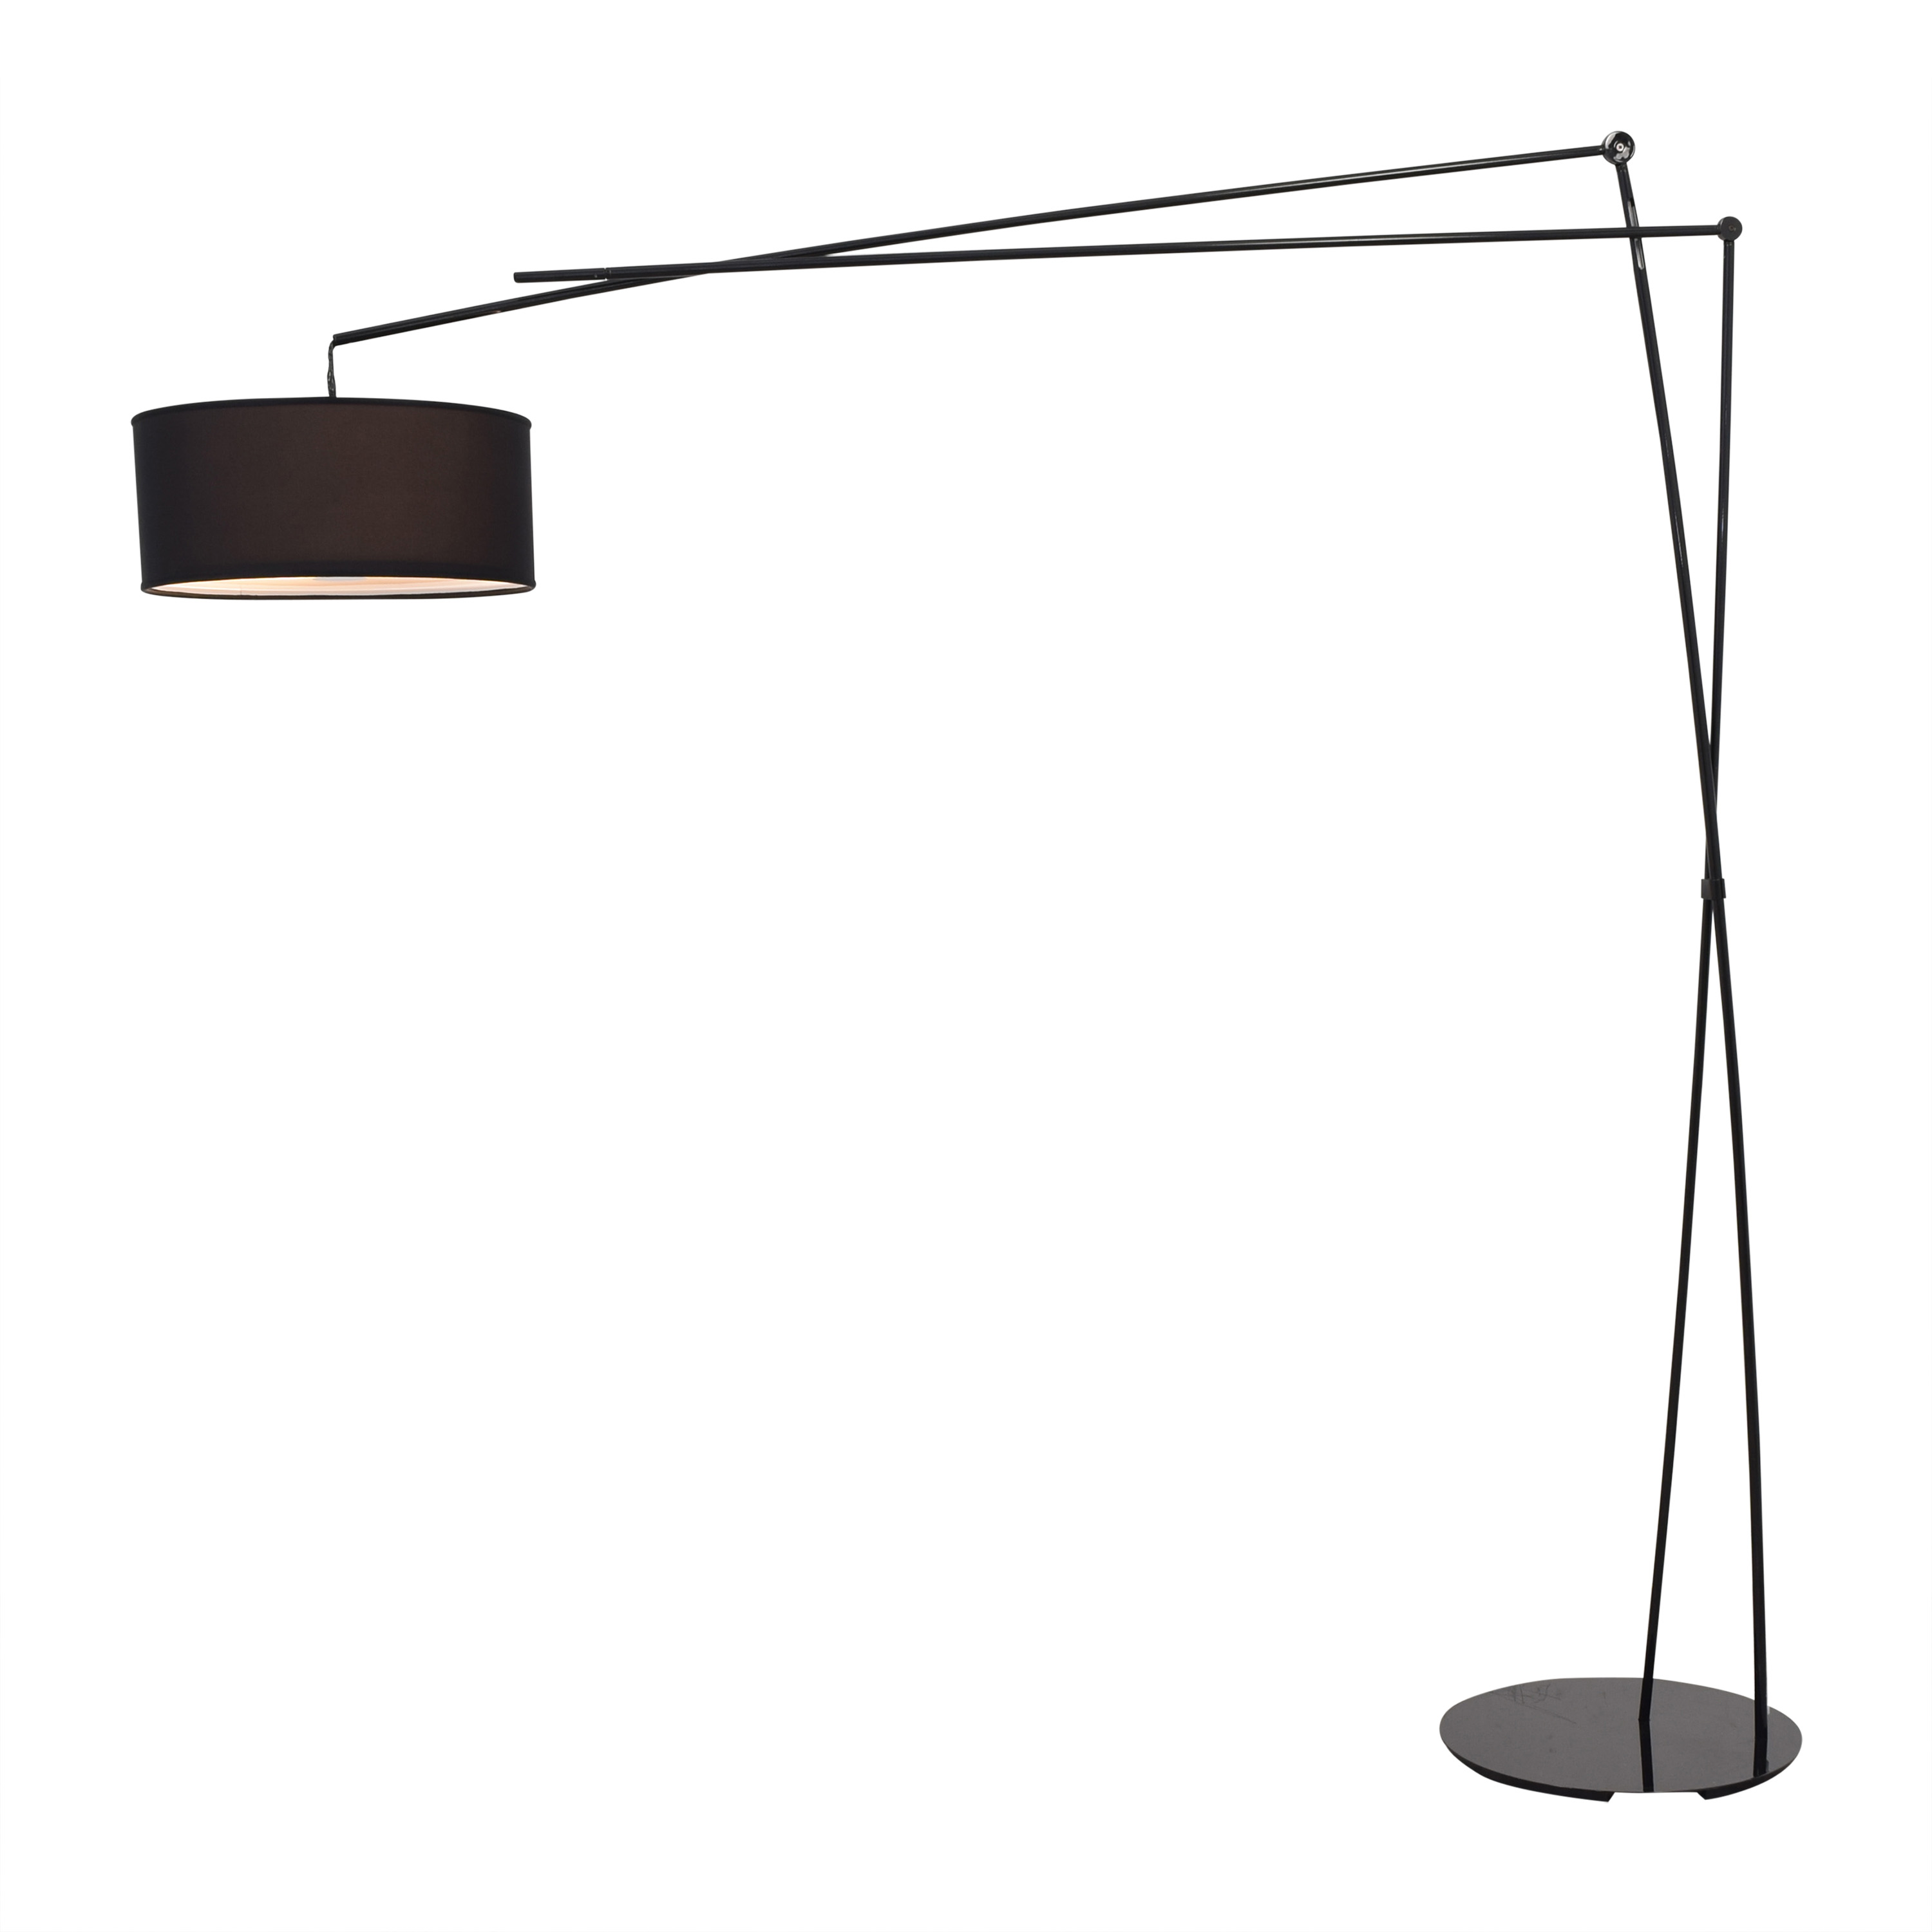 buy Prandina Prandina Effimera Floor Lamp online